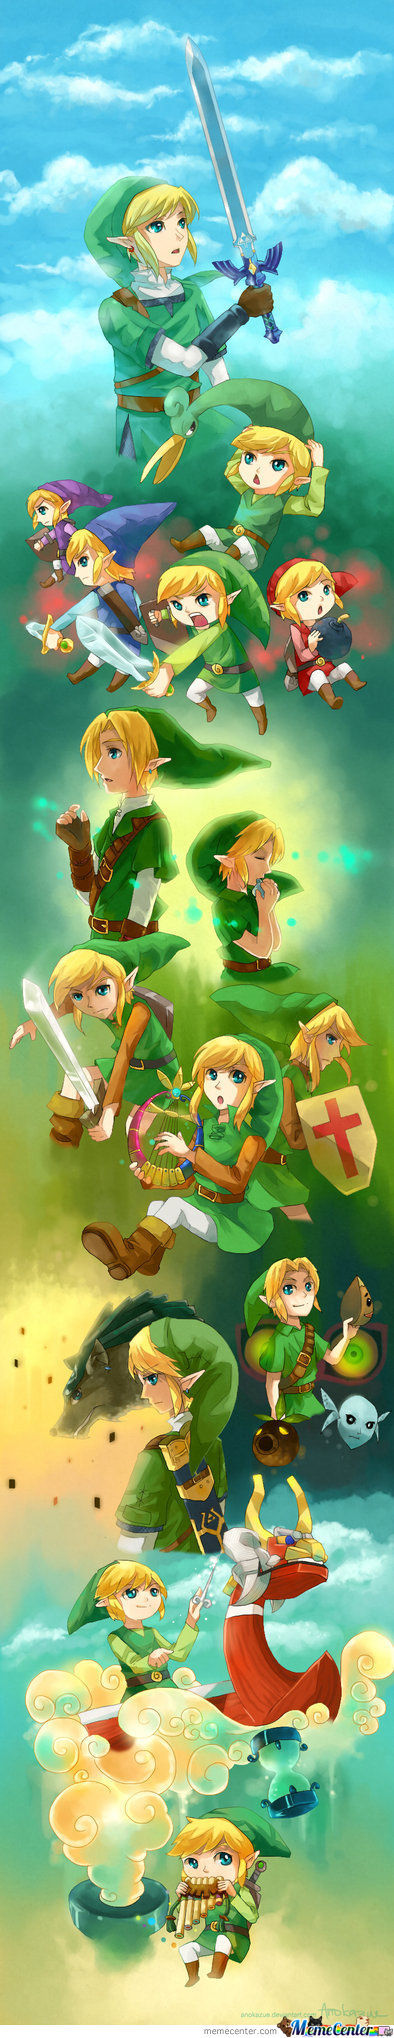 25 Years Of Link